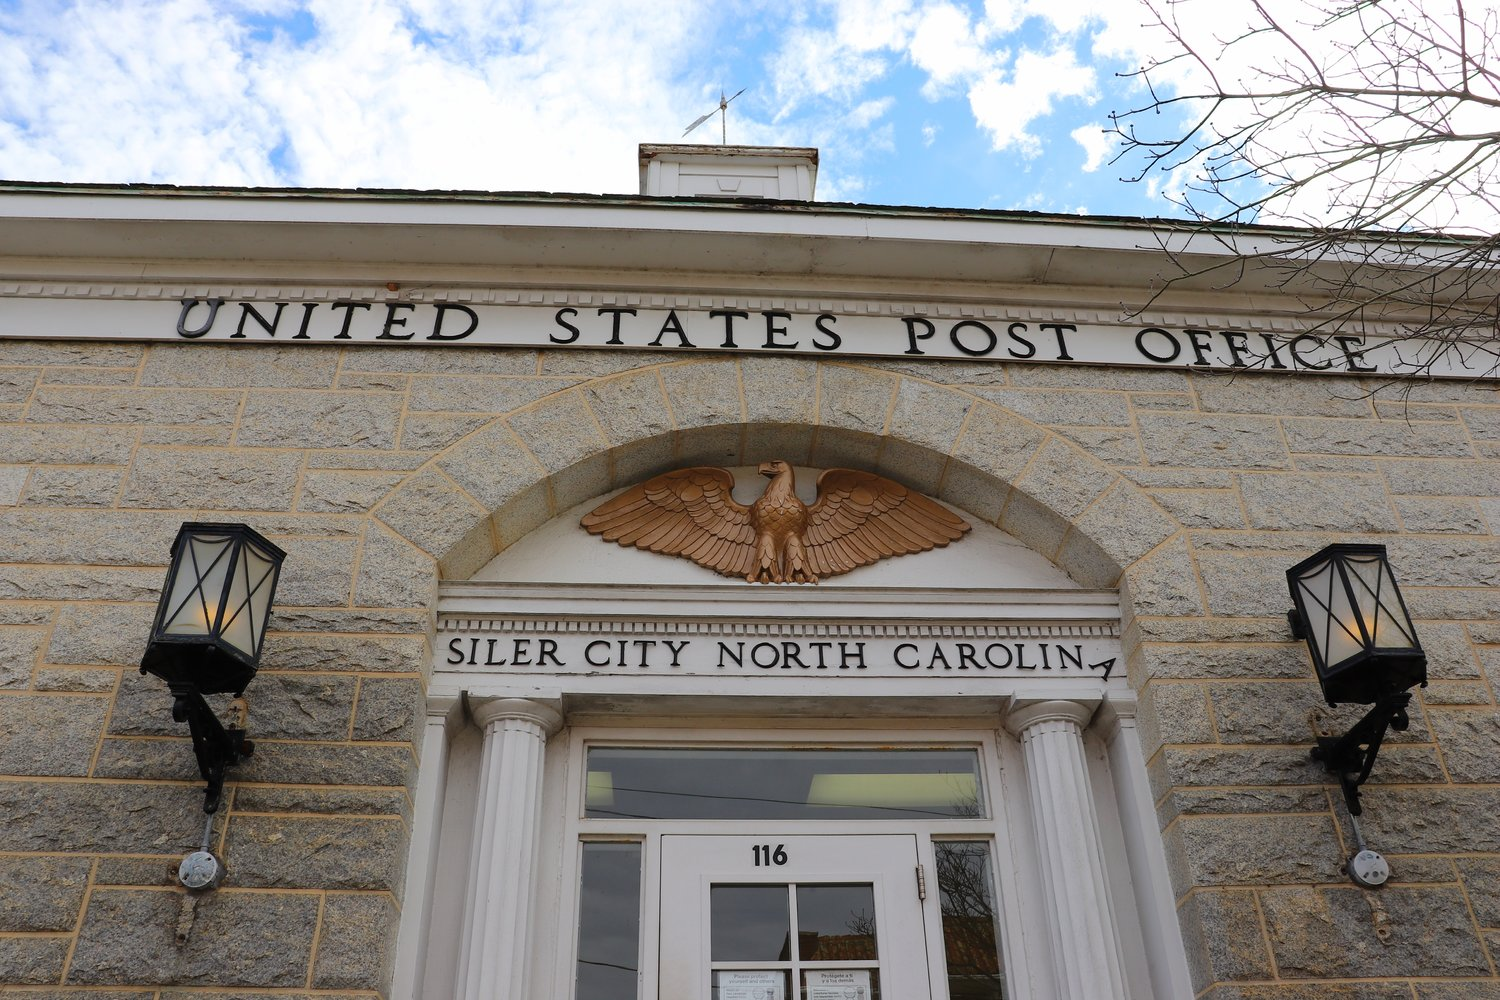 U.S. Postal Service officials would not confirm, but sources — including employees of the Siler City office — say 75% of staff have tested positive with COVID-19.